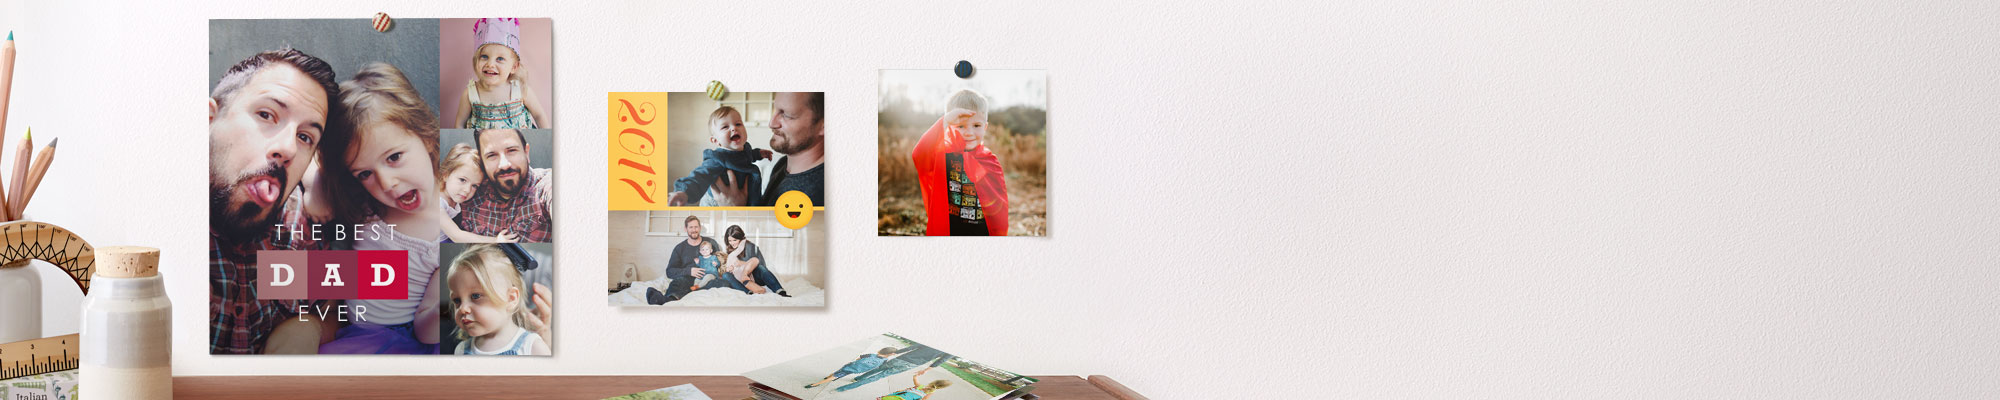 Photo and Collage Prints Great moments you can hold onto, literally. Share them, save them, and always cherish them.